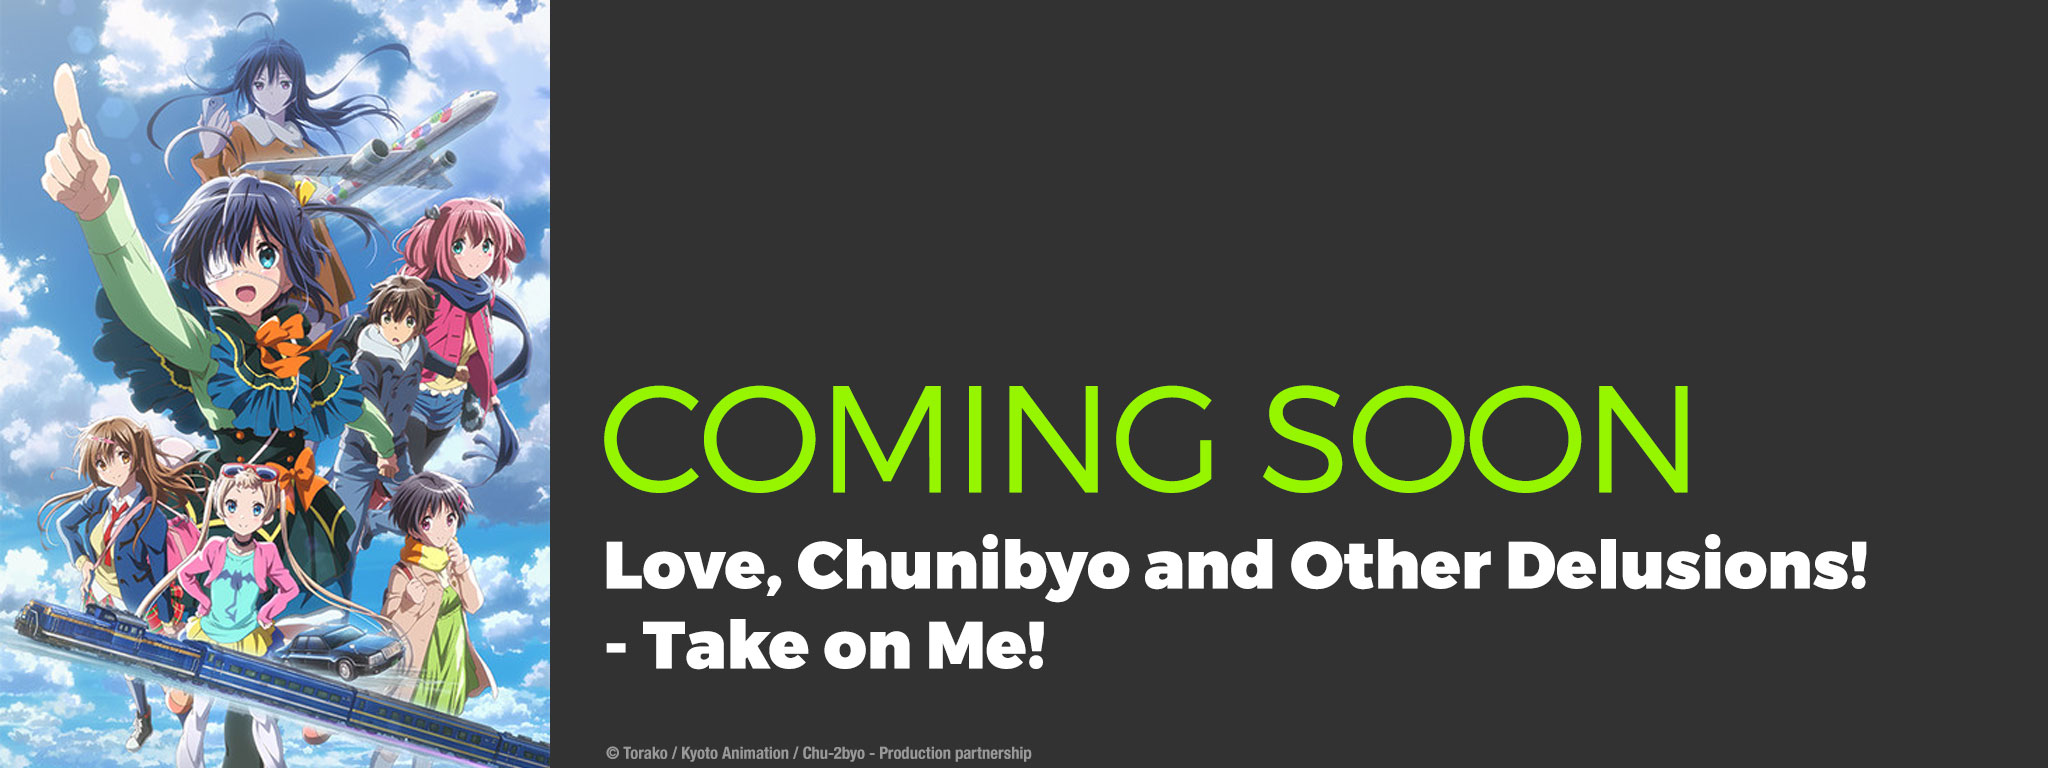 Love, Chunibyo and Other Delusions - Take on Me!